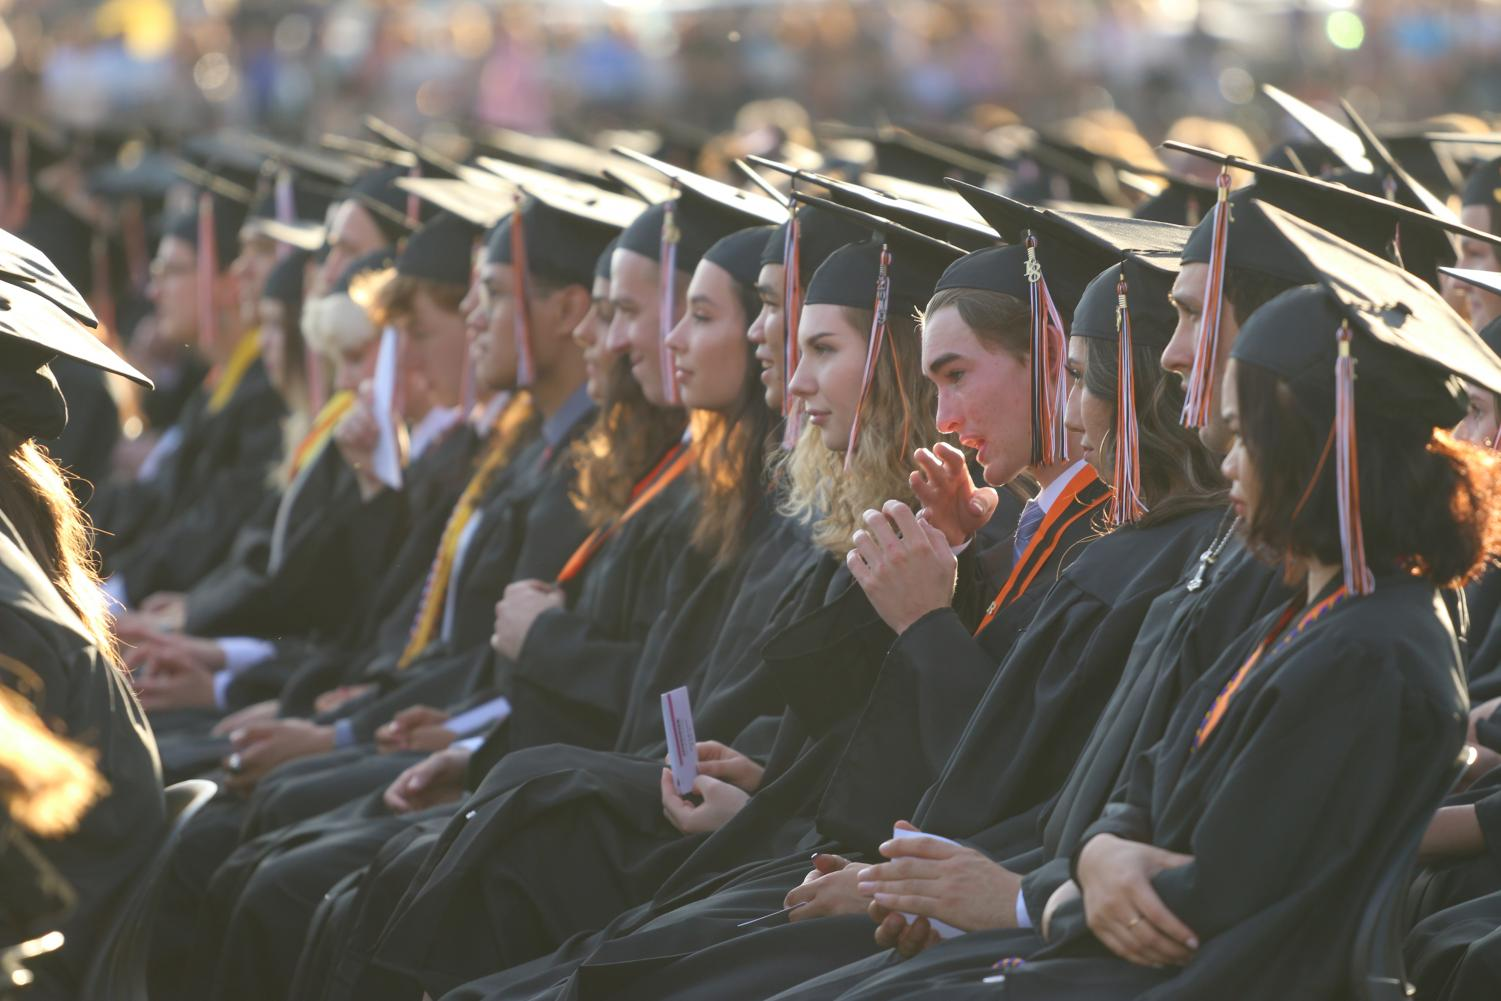 Students at last year's graduation. Changes in guidelines for graduation attire this year will allow students in club and elective programs to wear pre-approved memorabilia.